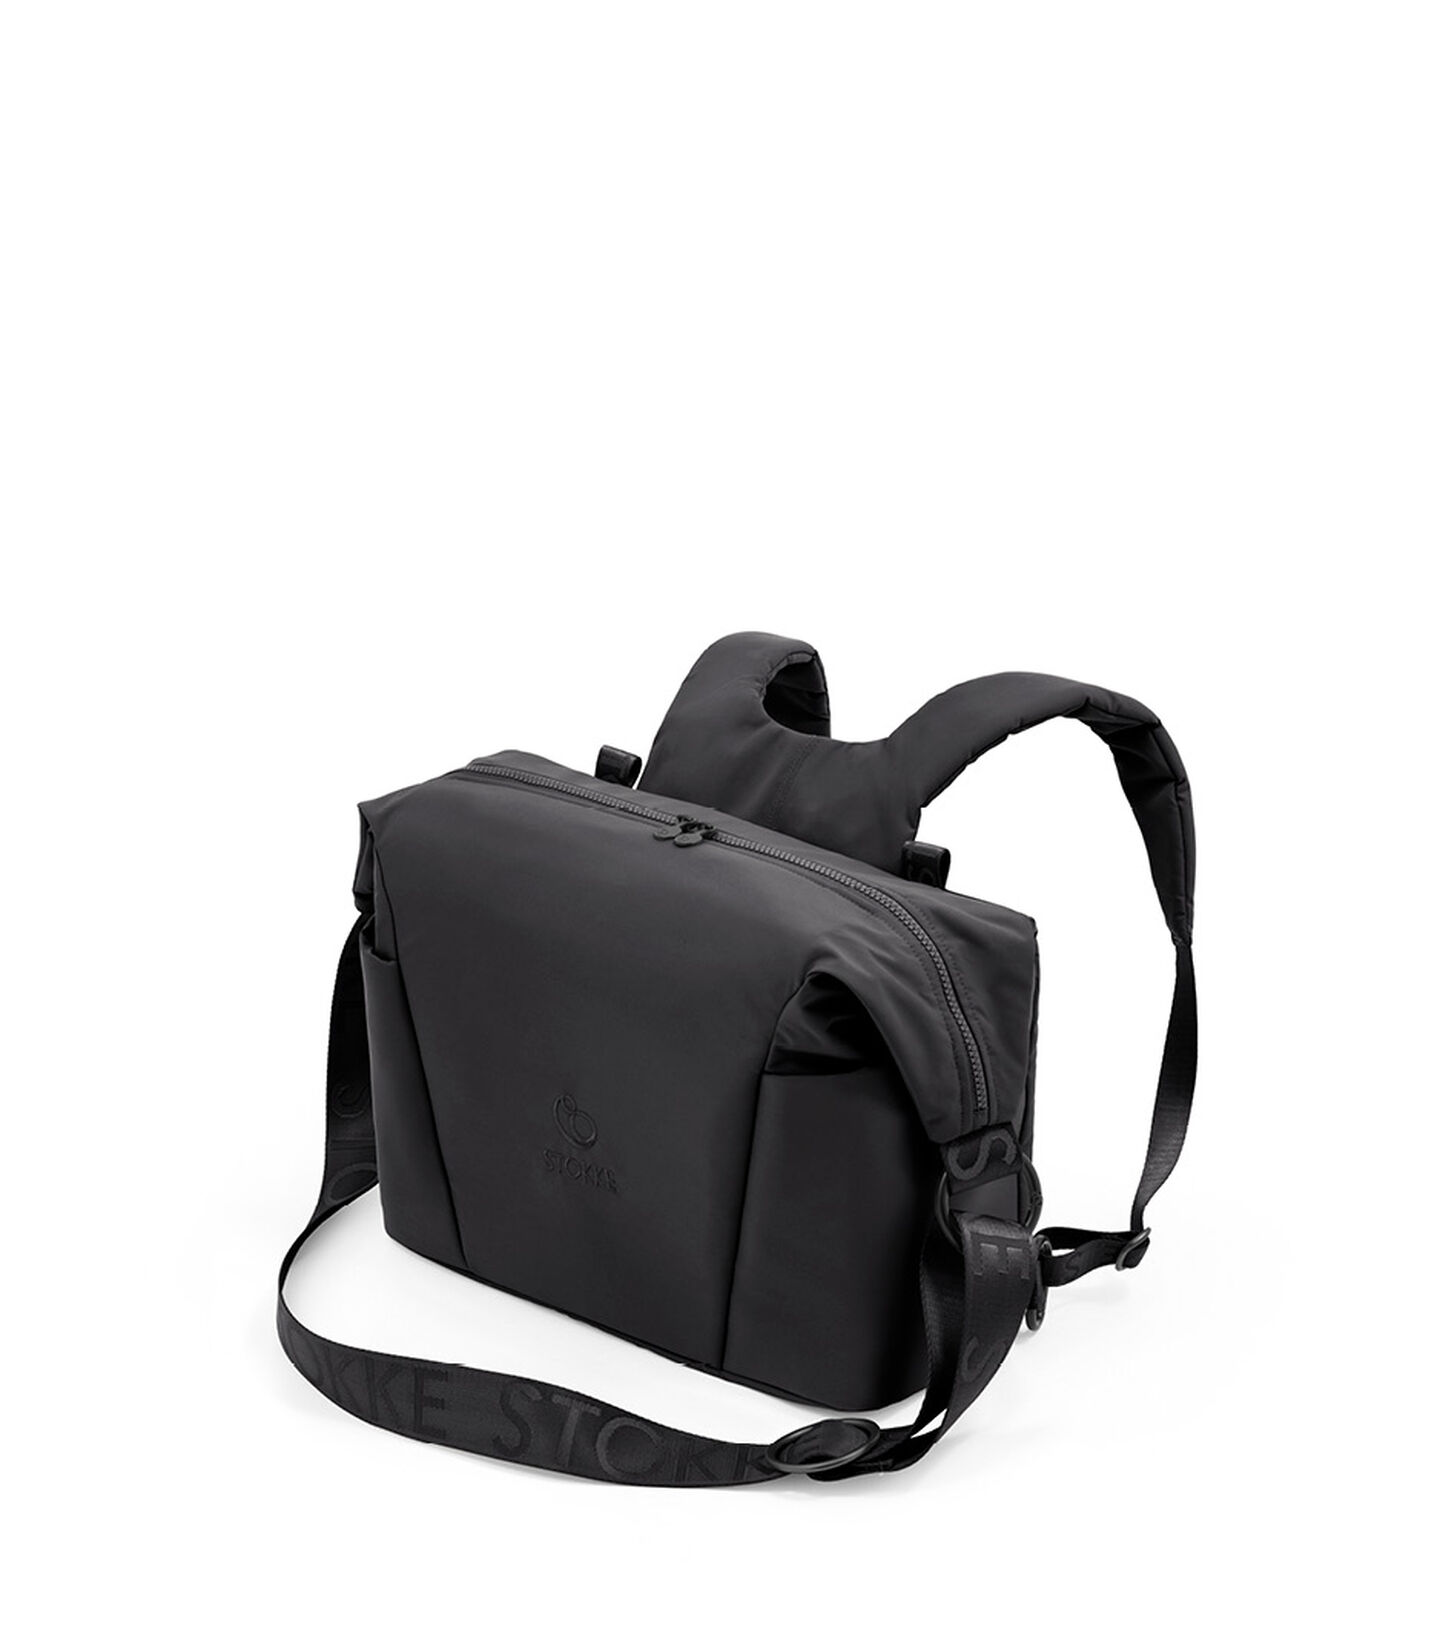 Stokke® Xplory® X Changing bag Rich Black, Negro Sólido, mainview view 2